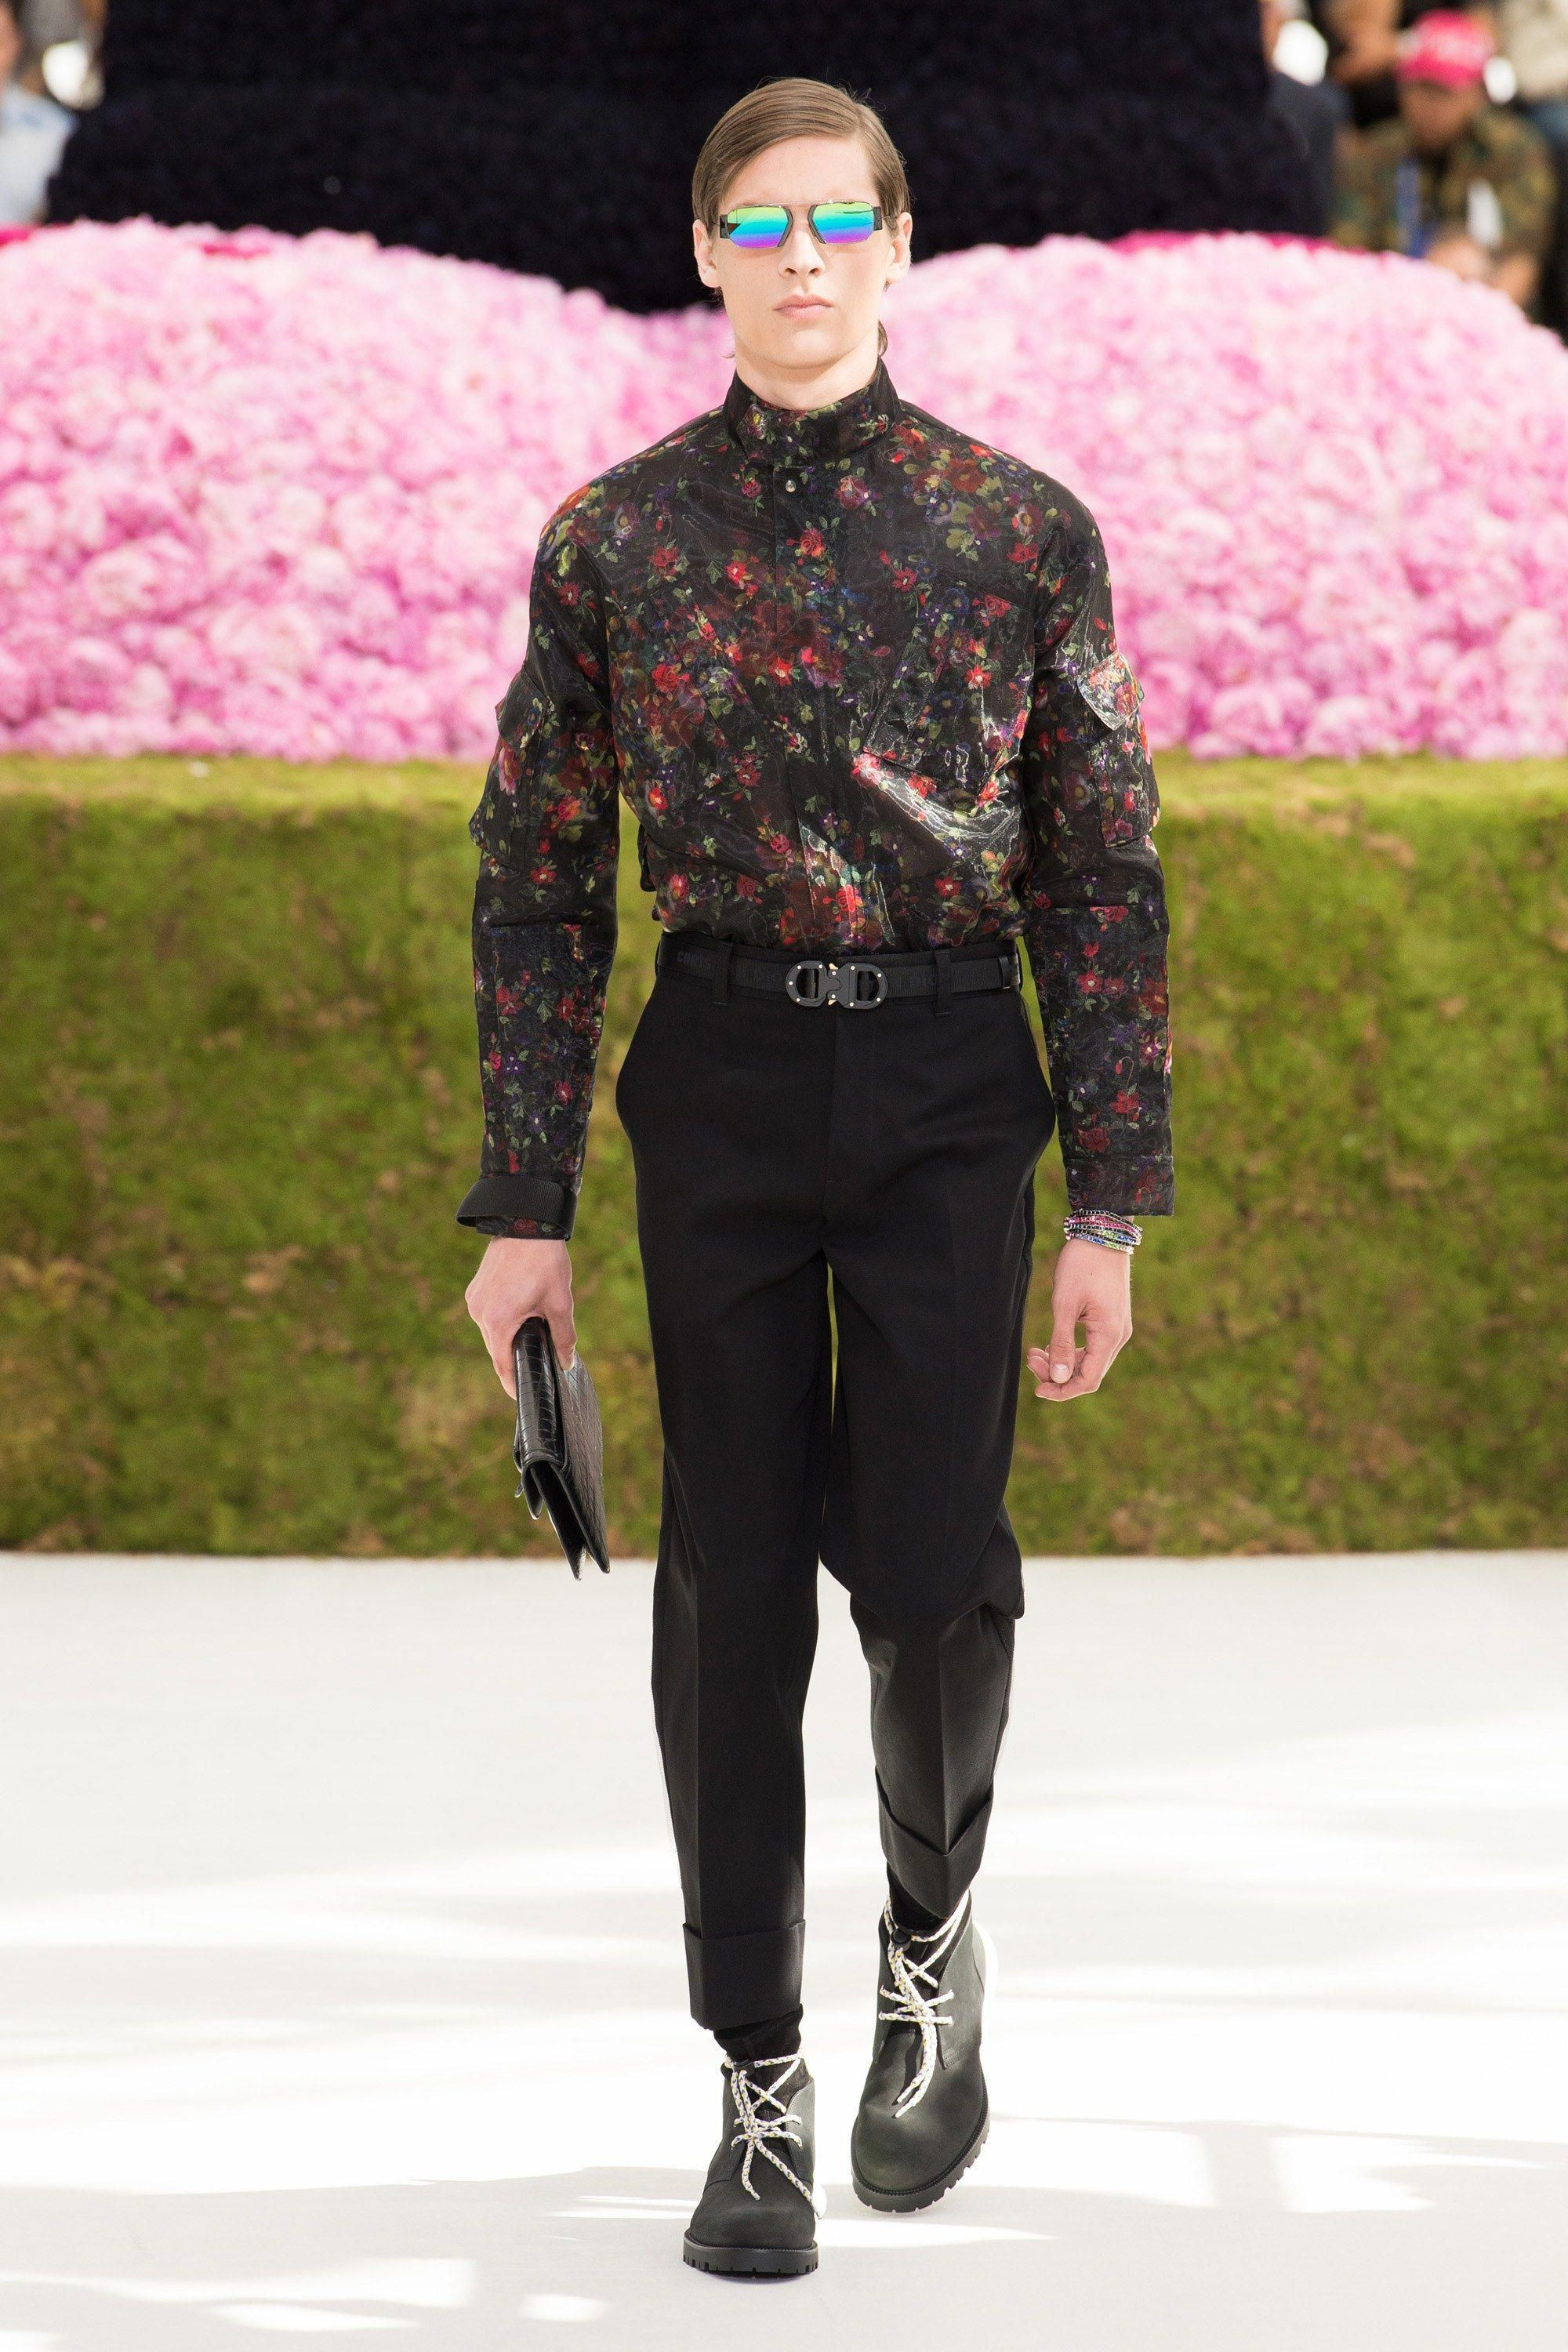 08f8d2de4bef Dior Homme Spring 2019 Menswear Paris Collection - Vogue  ItalianFashion